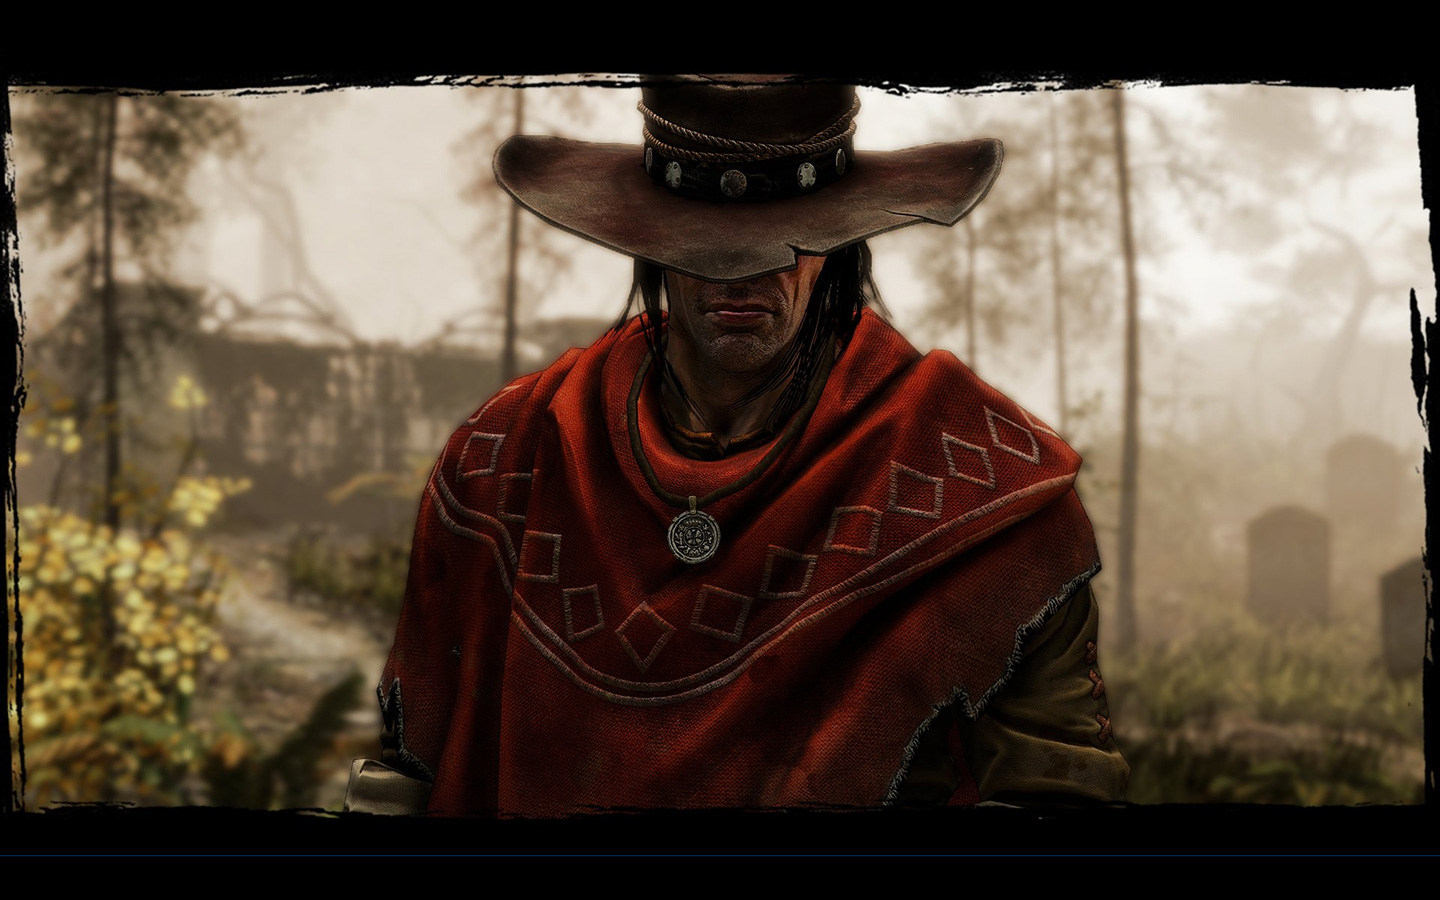 Free Call of Juarez: Gunslinger Wallpaper in 1440x900